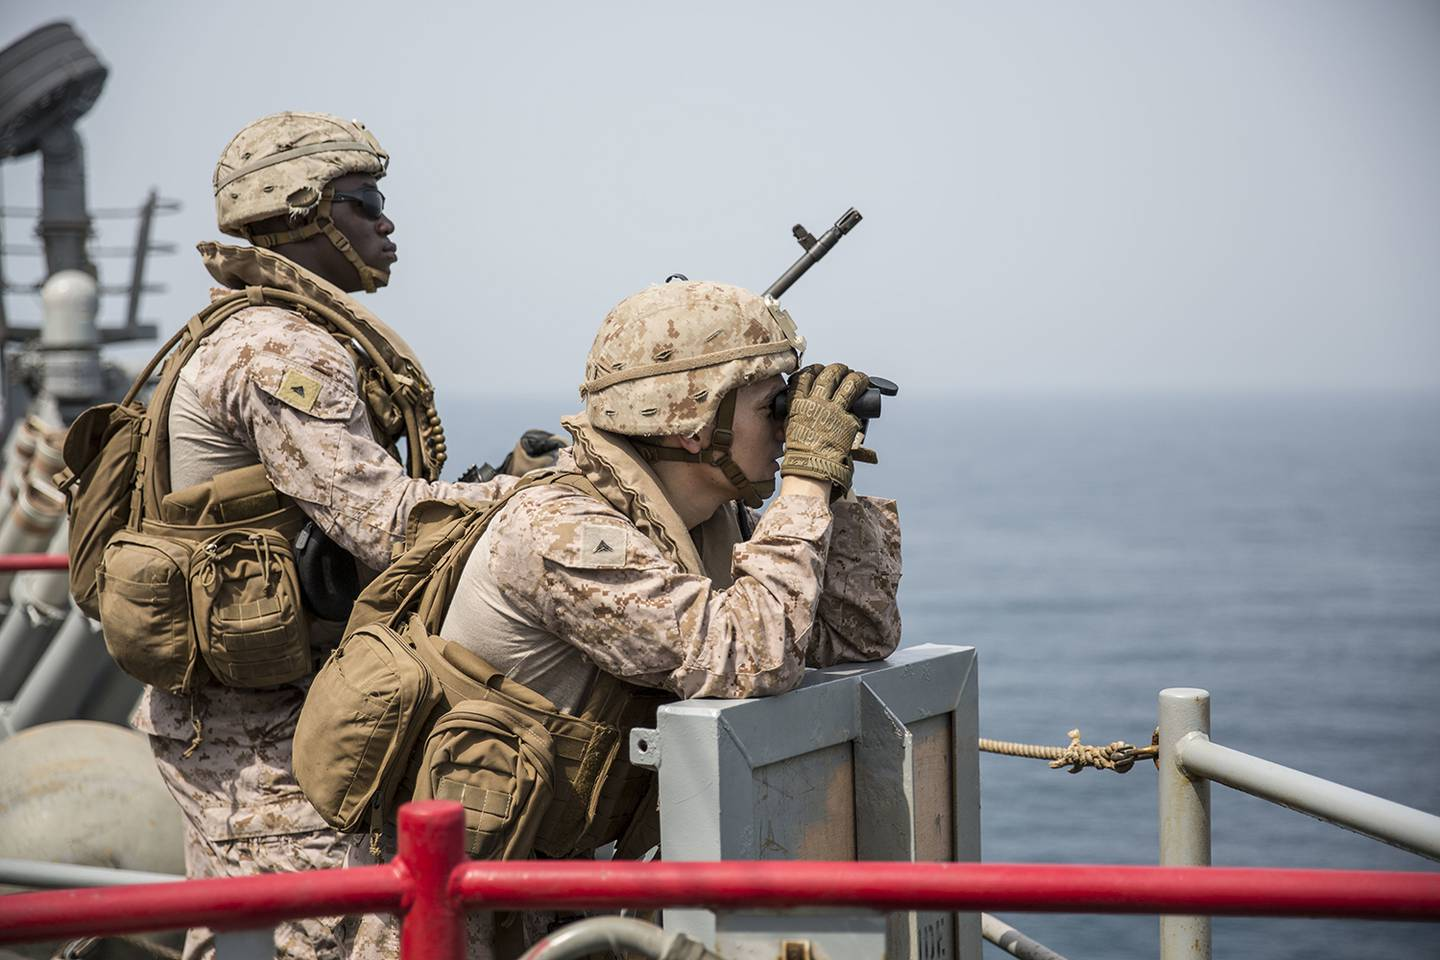 Marines provide security aboard the amphibious dock landing ship USS Harpers Ferry (LSD 49) on July 23, 2019, during a Strait of Hormuz transit.